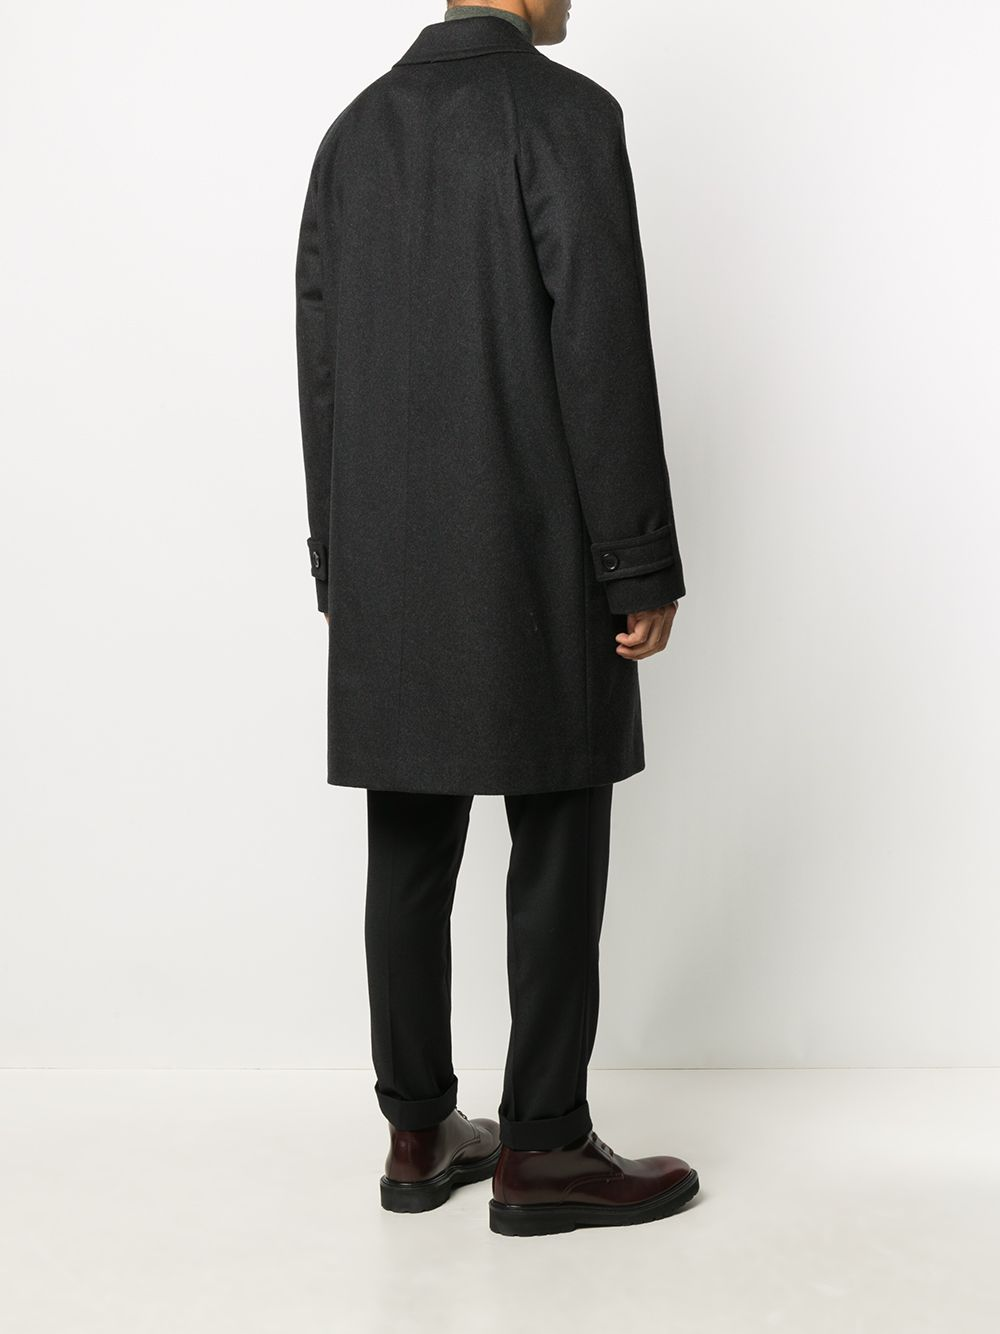 Cappotto monopetto PAUL SMITH | Cappotto | M1R-355U-E0011078